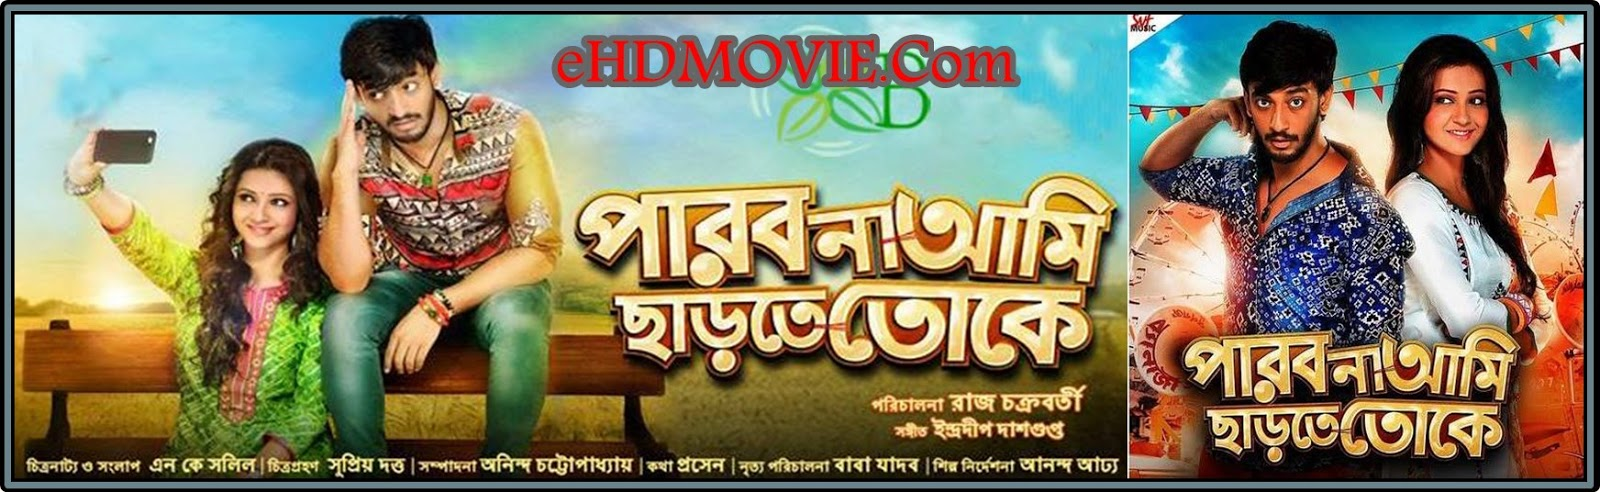 Parbona Ami Chartey Tokey 2015 Bengali Full Movie Original 480p - 720p ORG WEB-DL 500MB - 1.4GB